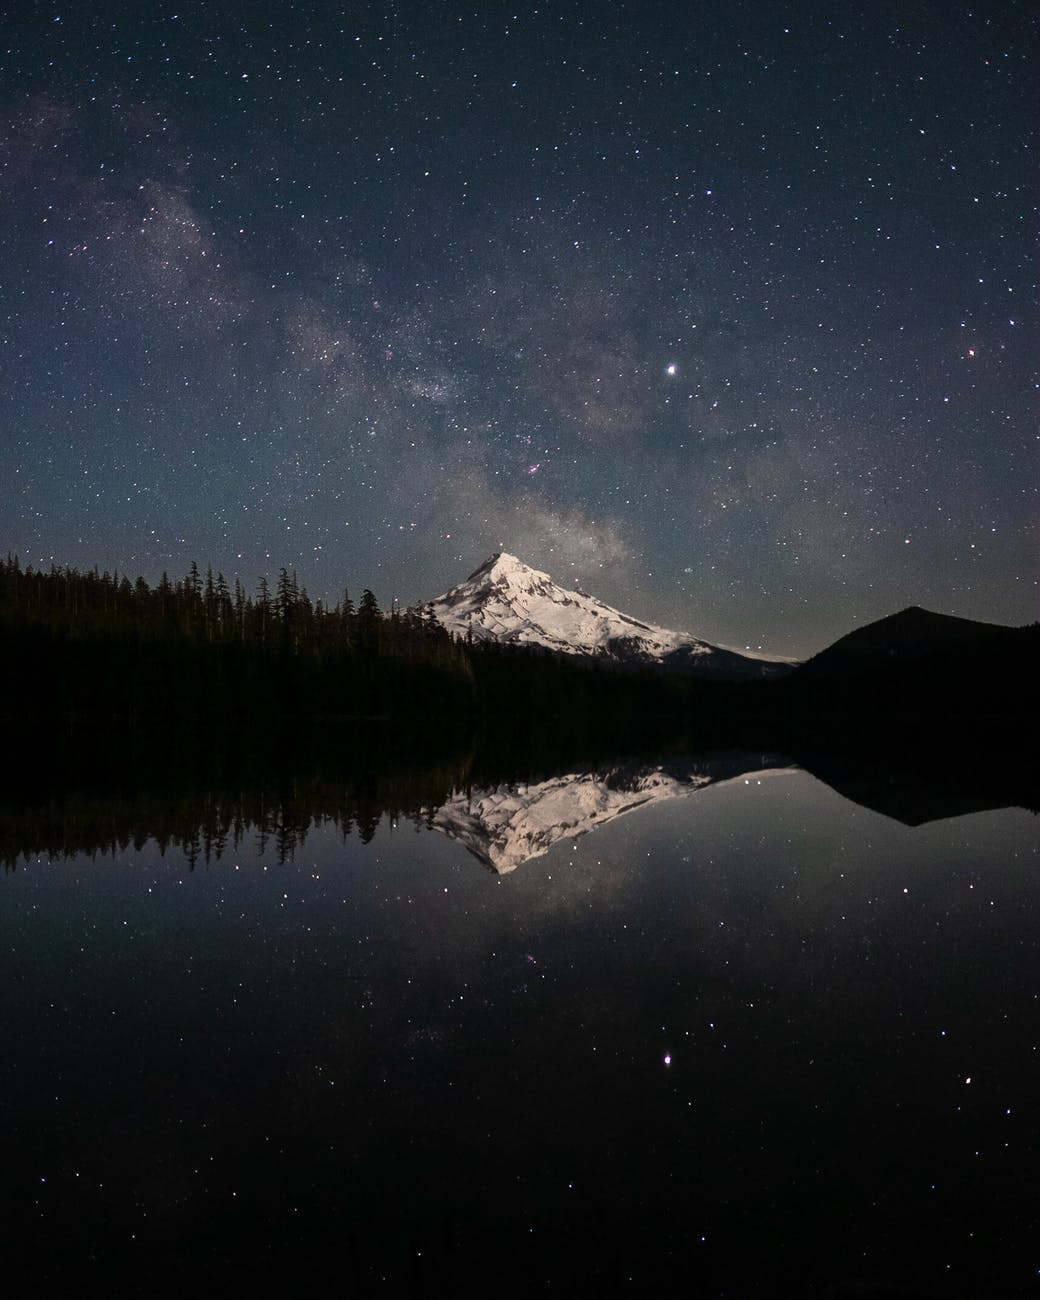 photography of a snowy mountain during nighttime